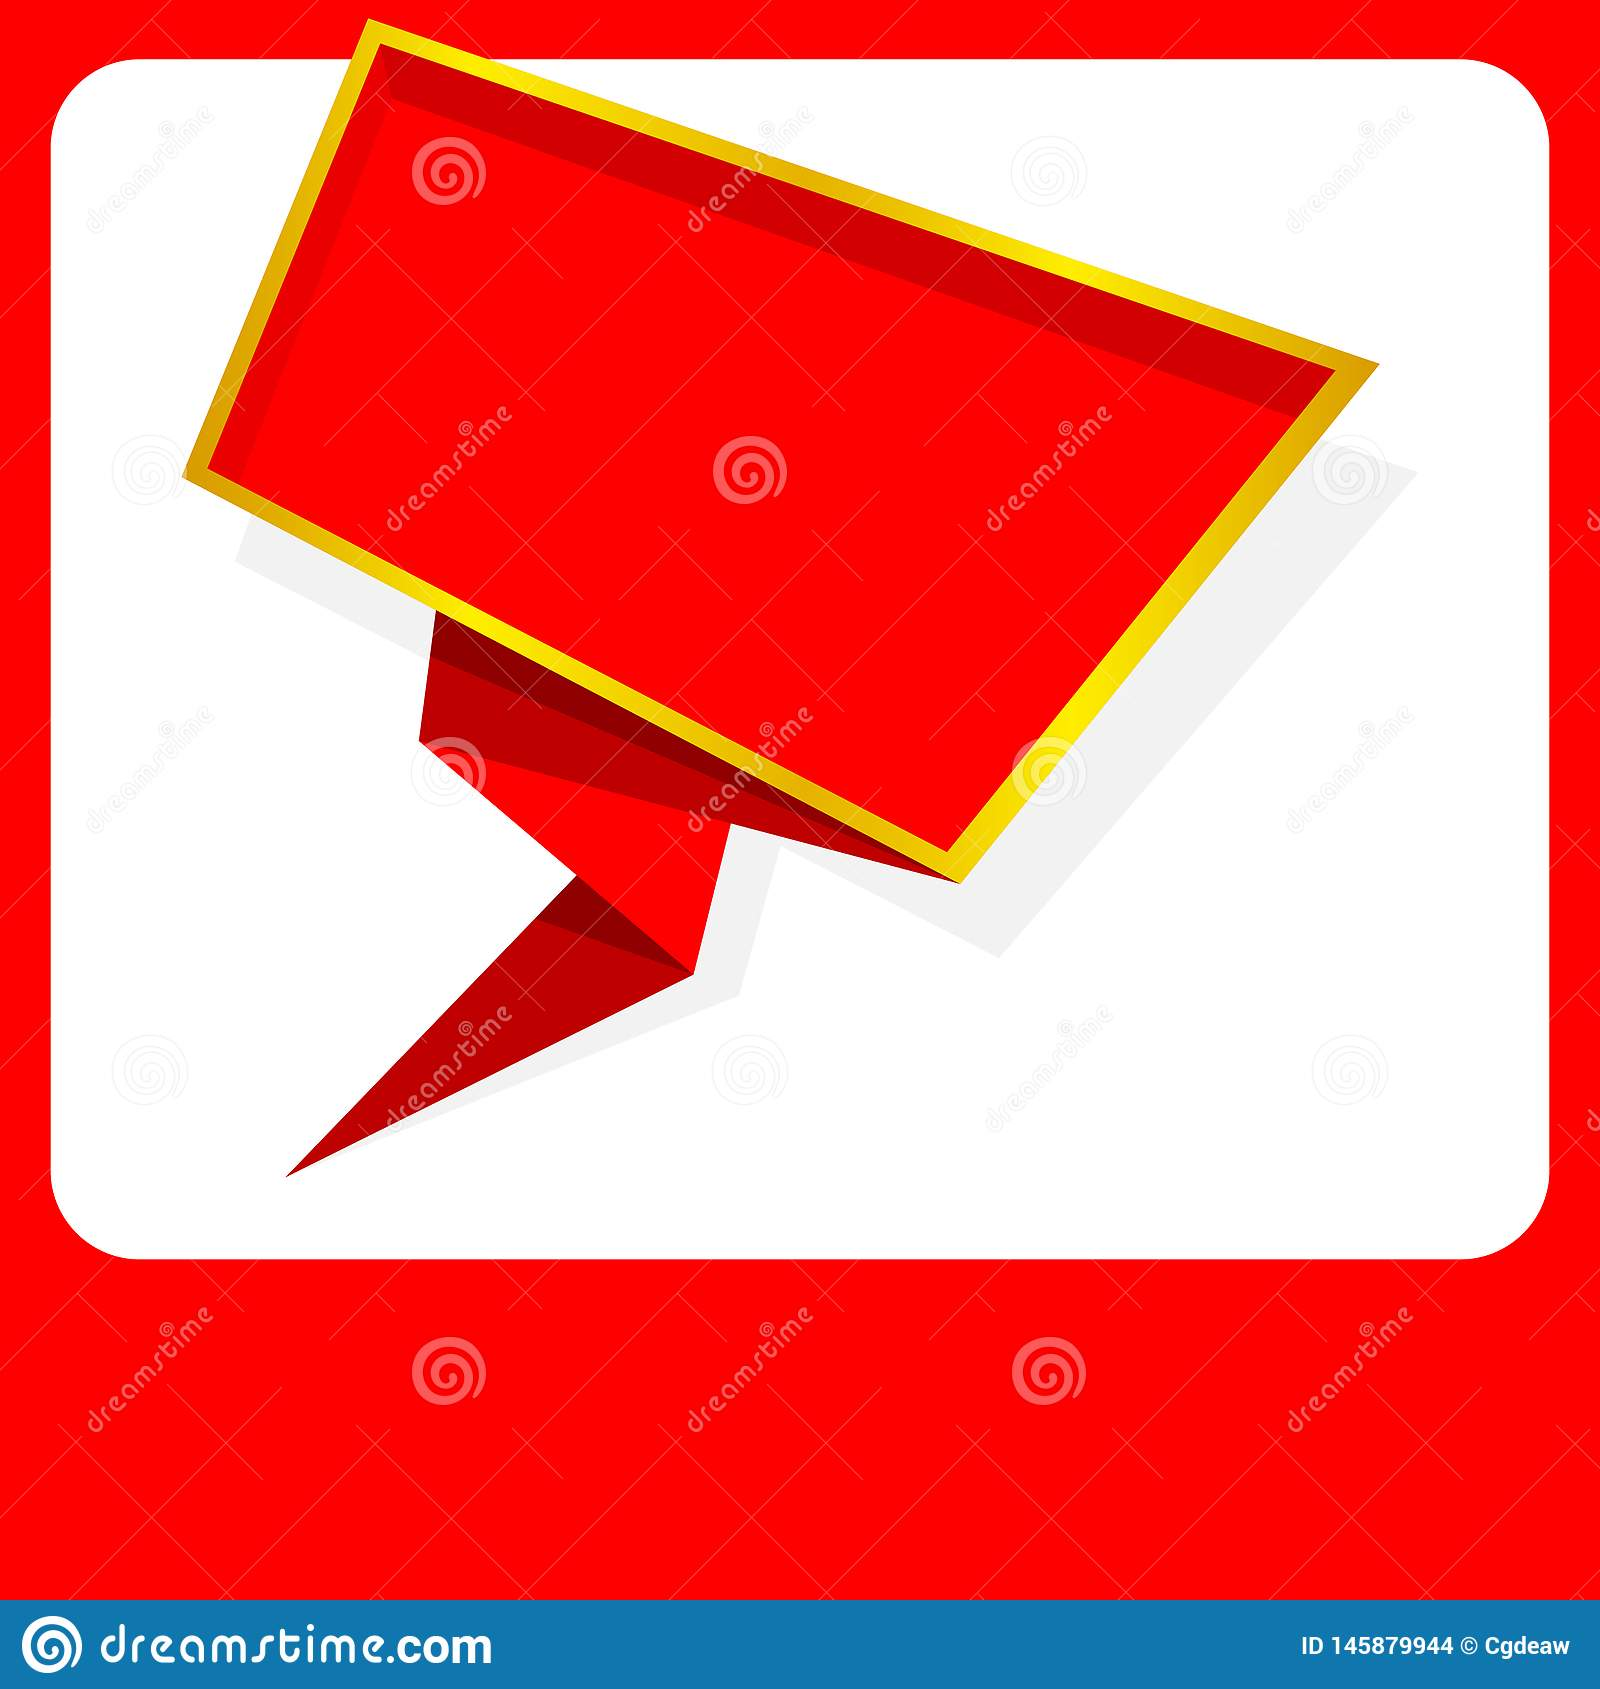 Banner red blank, red color frame banner template flat lay fashion style, red frame square empty copy space for advertising banner